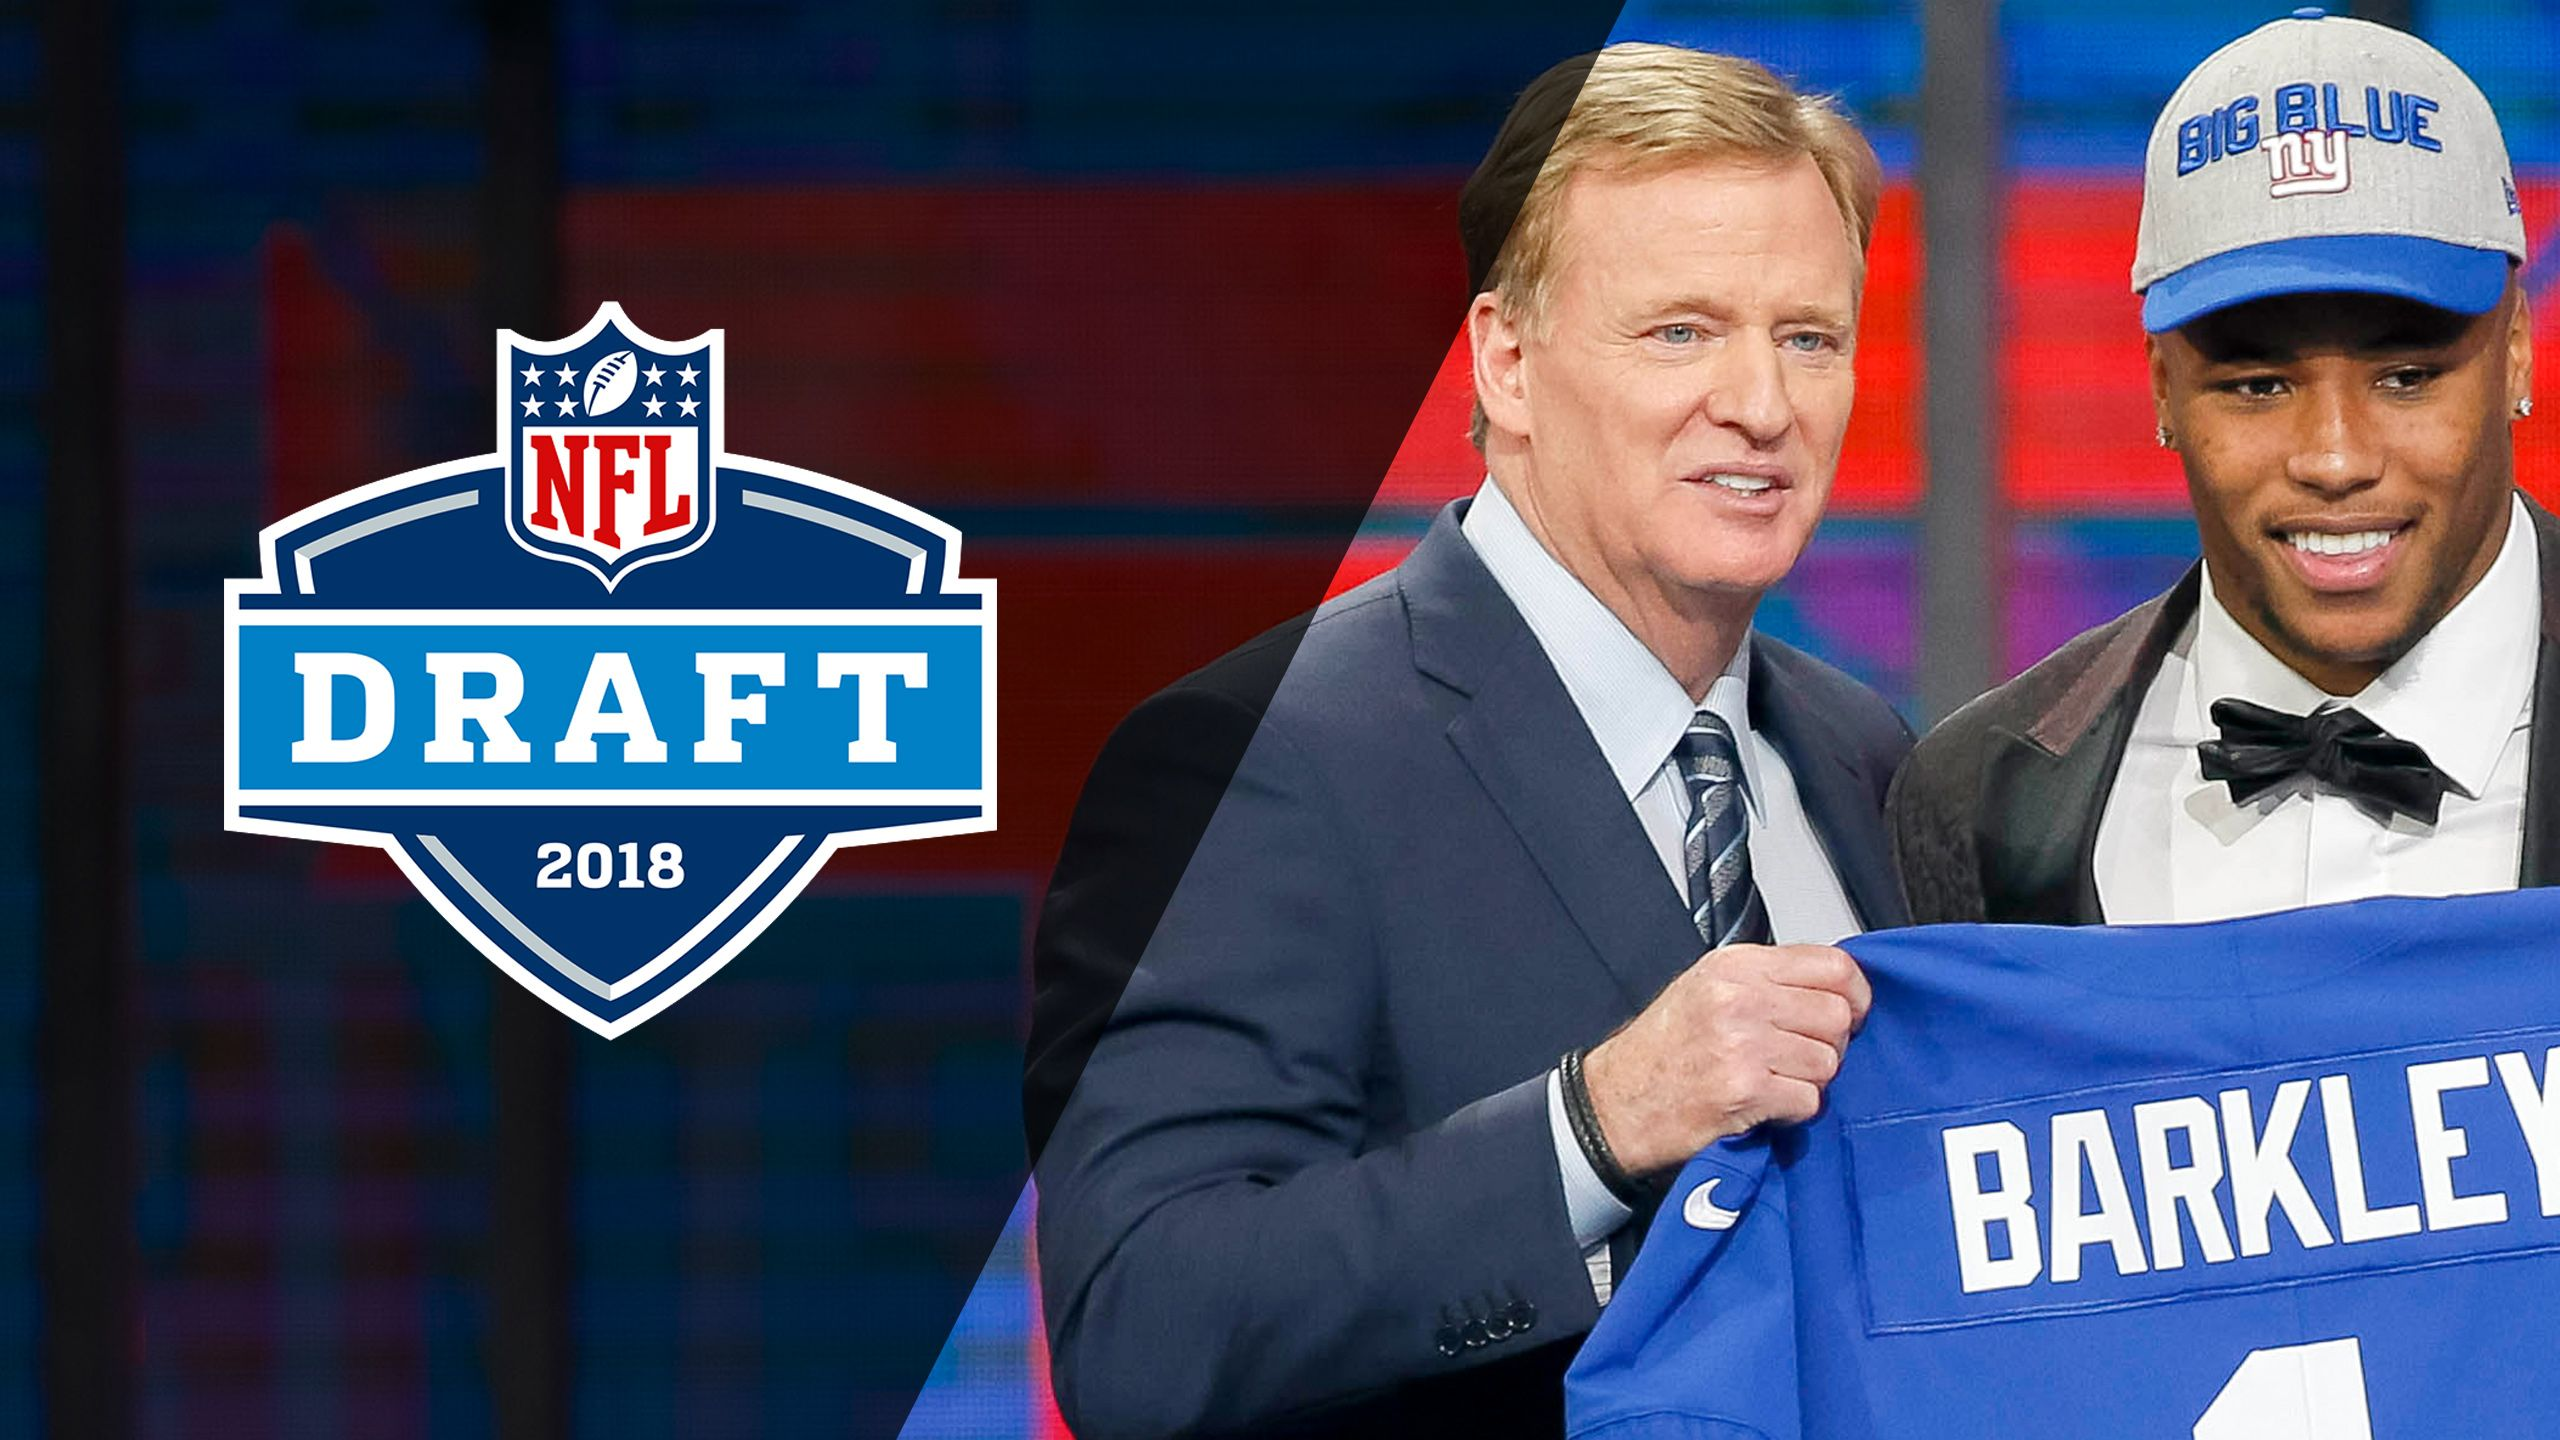 2018 NFL Draft presented by Courtyard (Round 1)